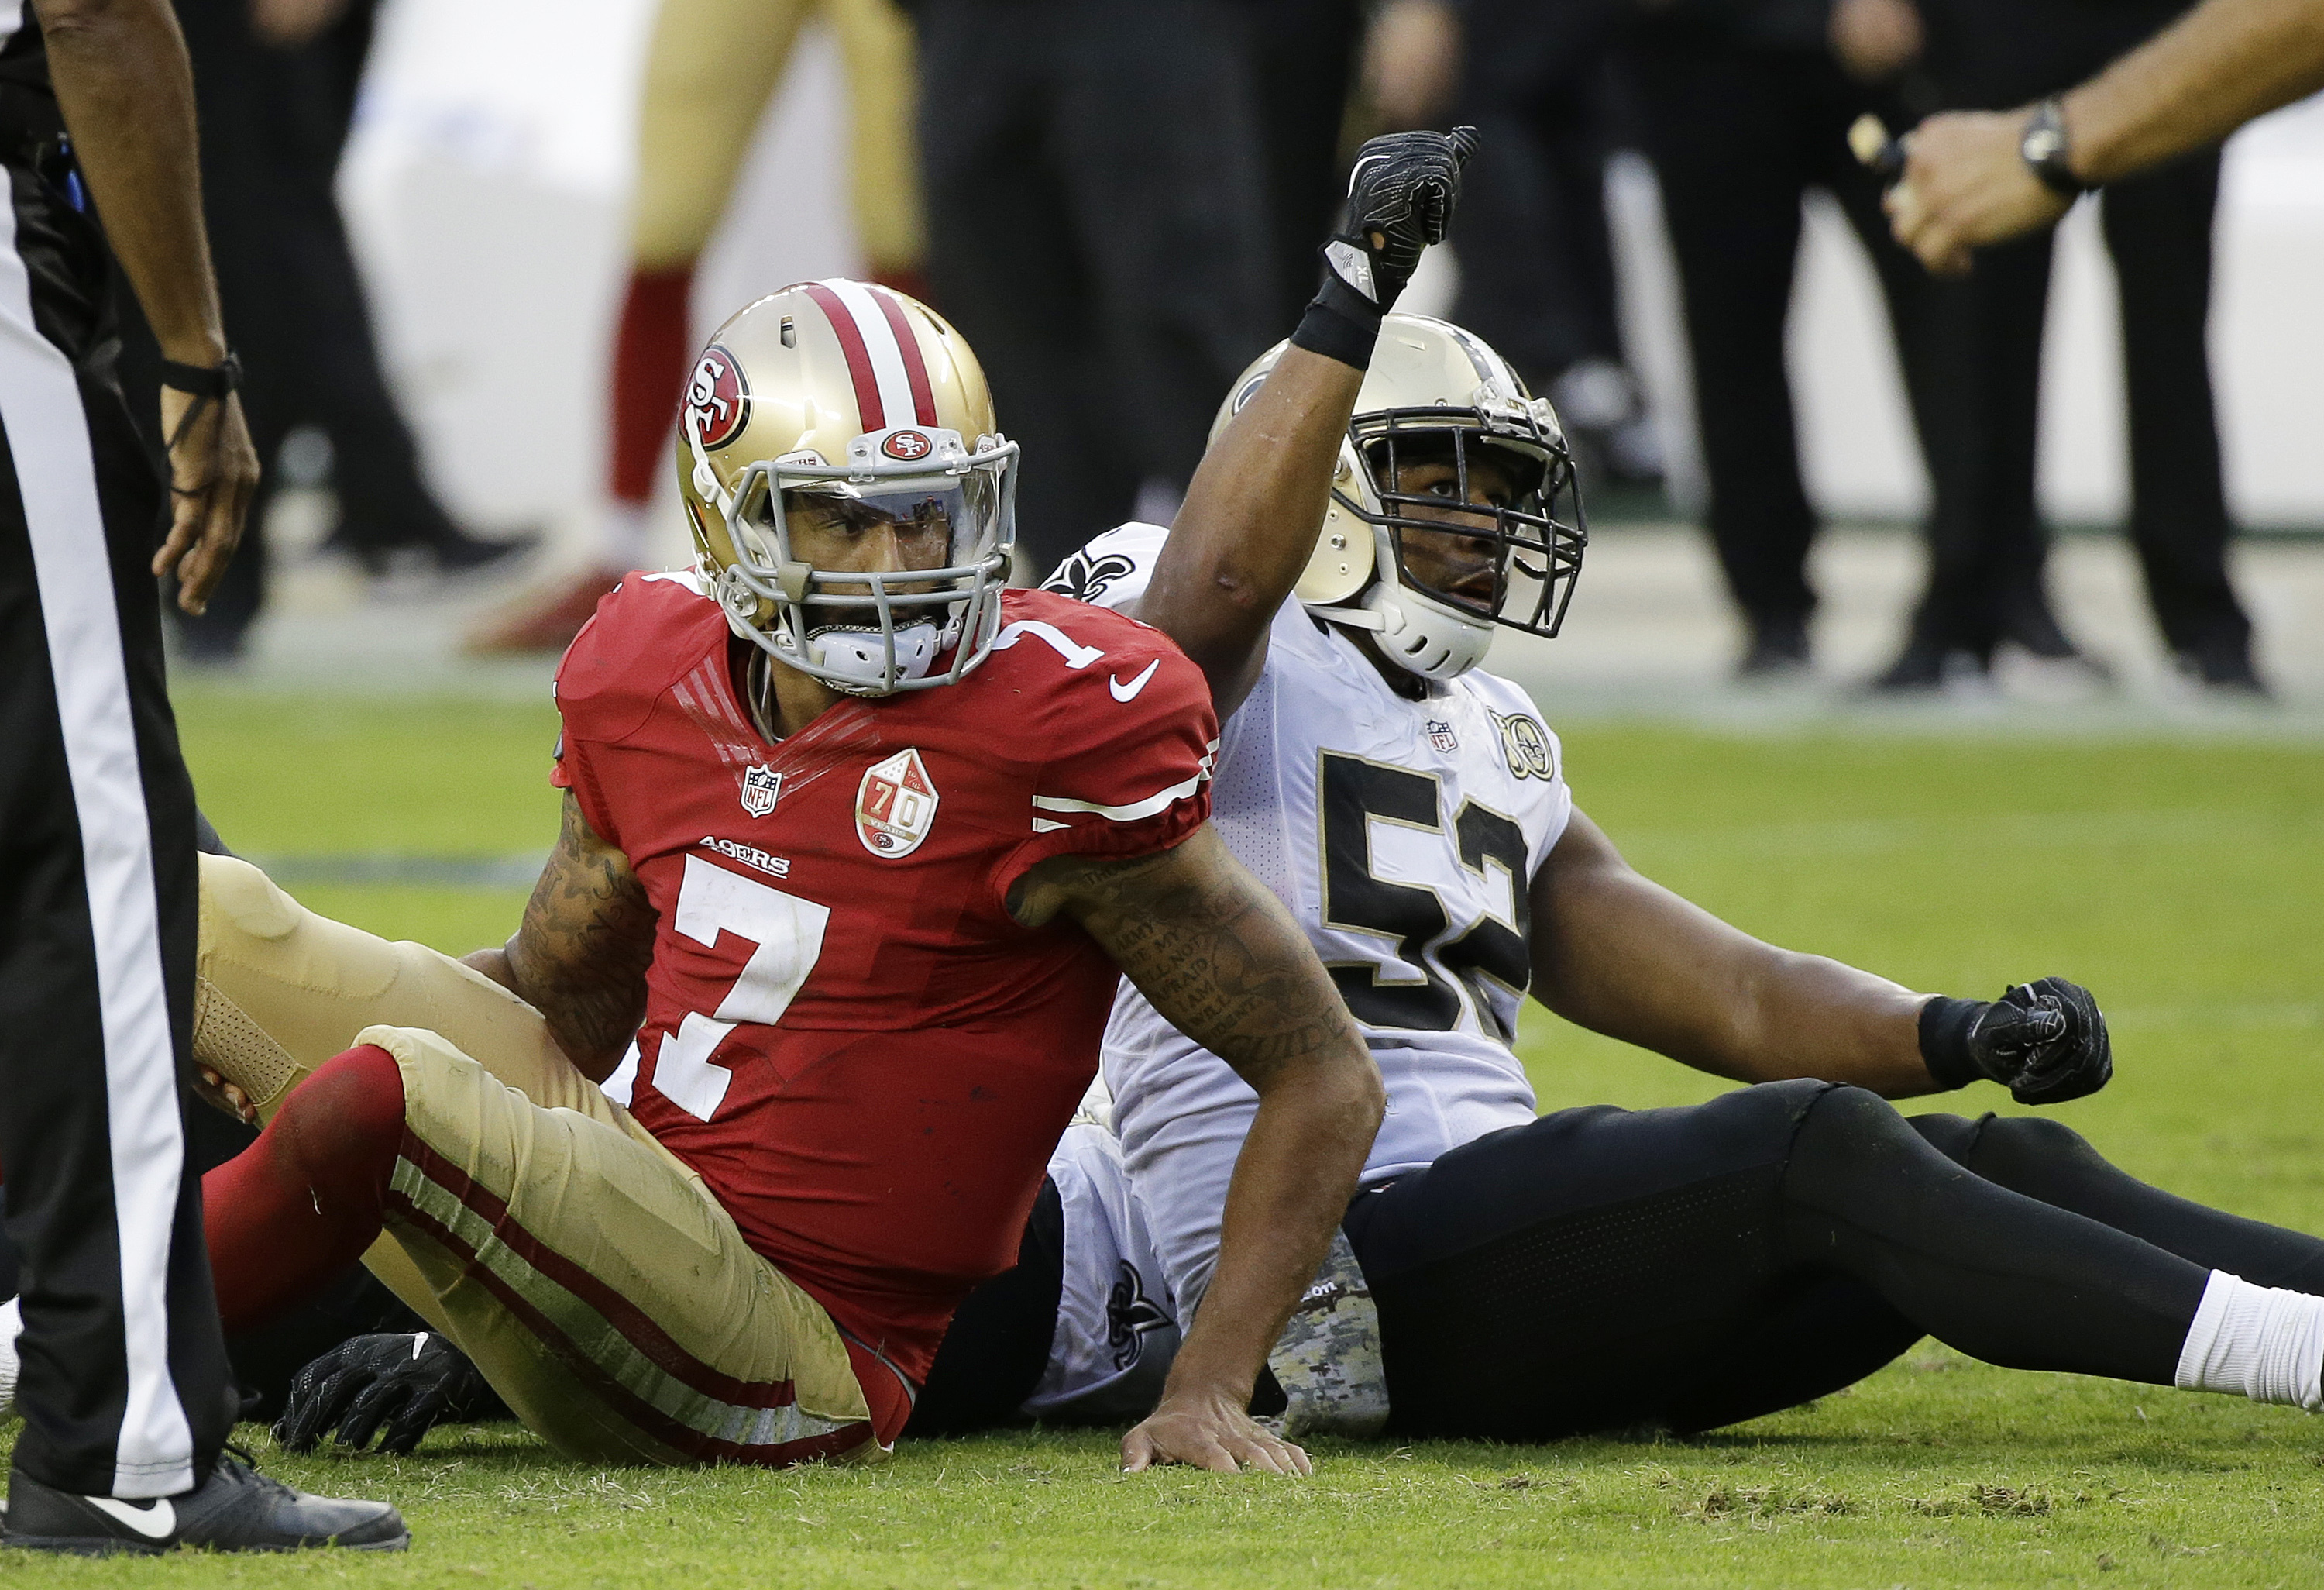 San Francisco 49ers quarterback Colin Kaepernick, left, sits on the field after fumbling the ball as New Orleans Saints outside linebacker Craig Robertson reacts during the second half of an NFL football game Sunday, Nov. 6, 2016, in Santa Clara, Calif. (